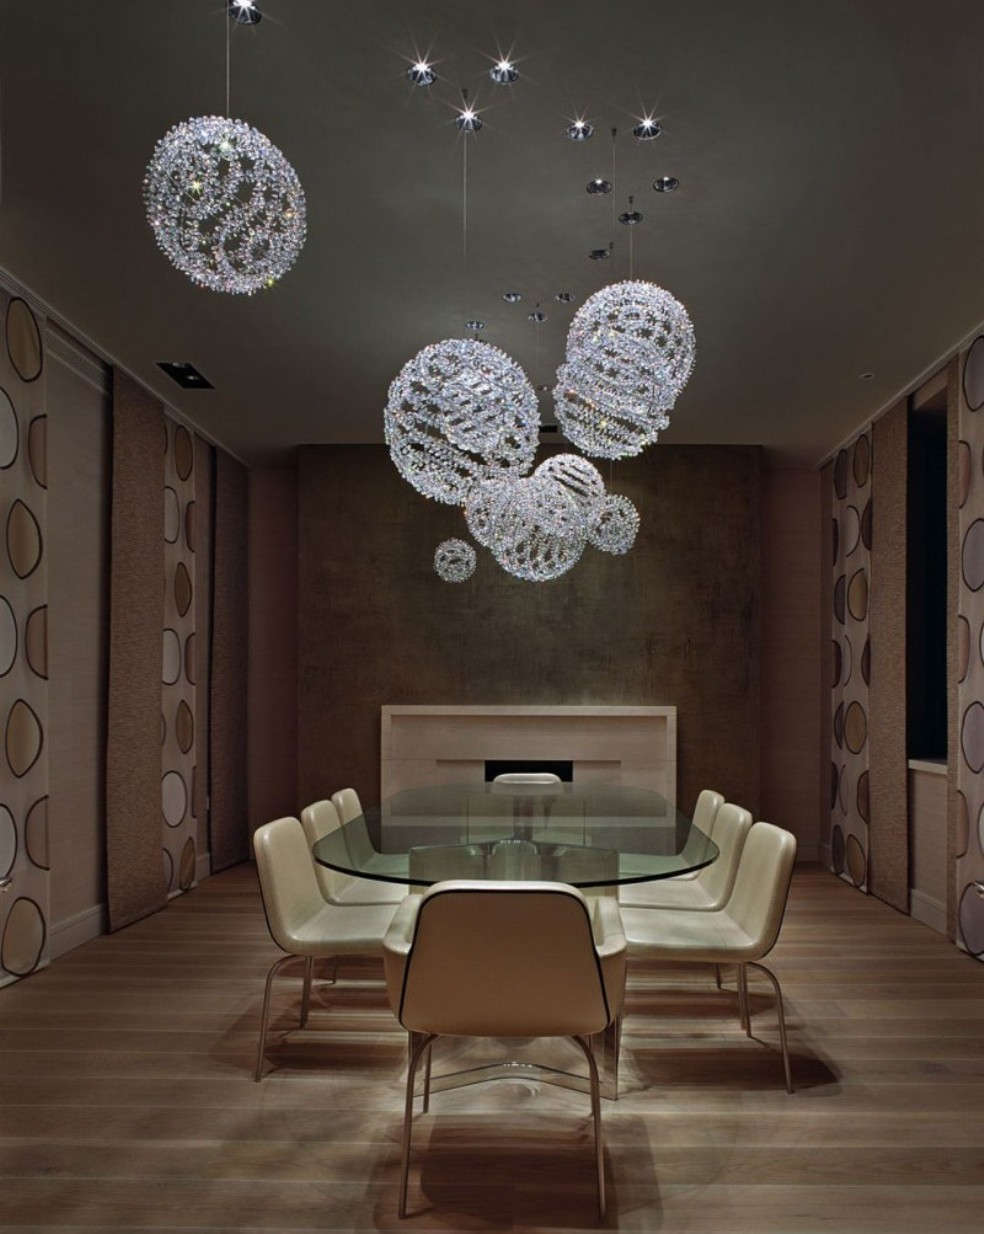 Top 20 pendant luxury lighting crystal pendant lighting design luxury lighting top 20 pendant luxury lighting glass top dining room sets aloadofball Image collections